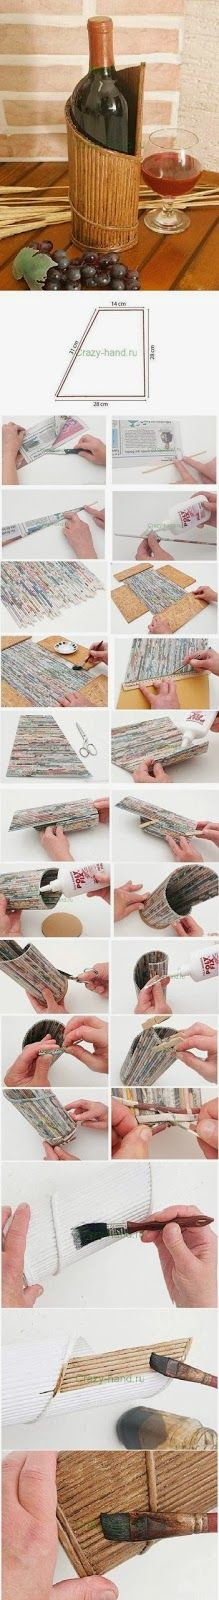 Best DIY Ideas: Make a Wine Stand From Newspaper. No tutorial, but pictures. Could be used for other types of baskets.